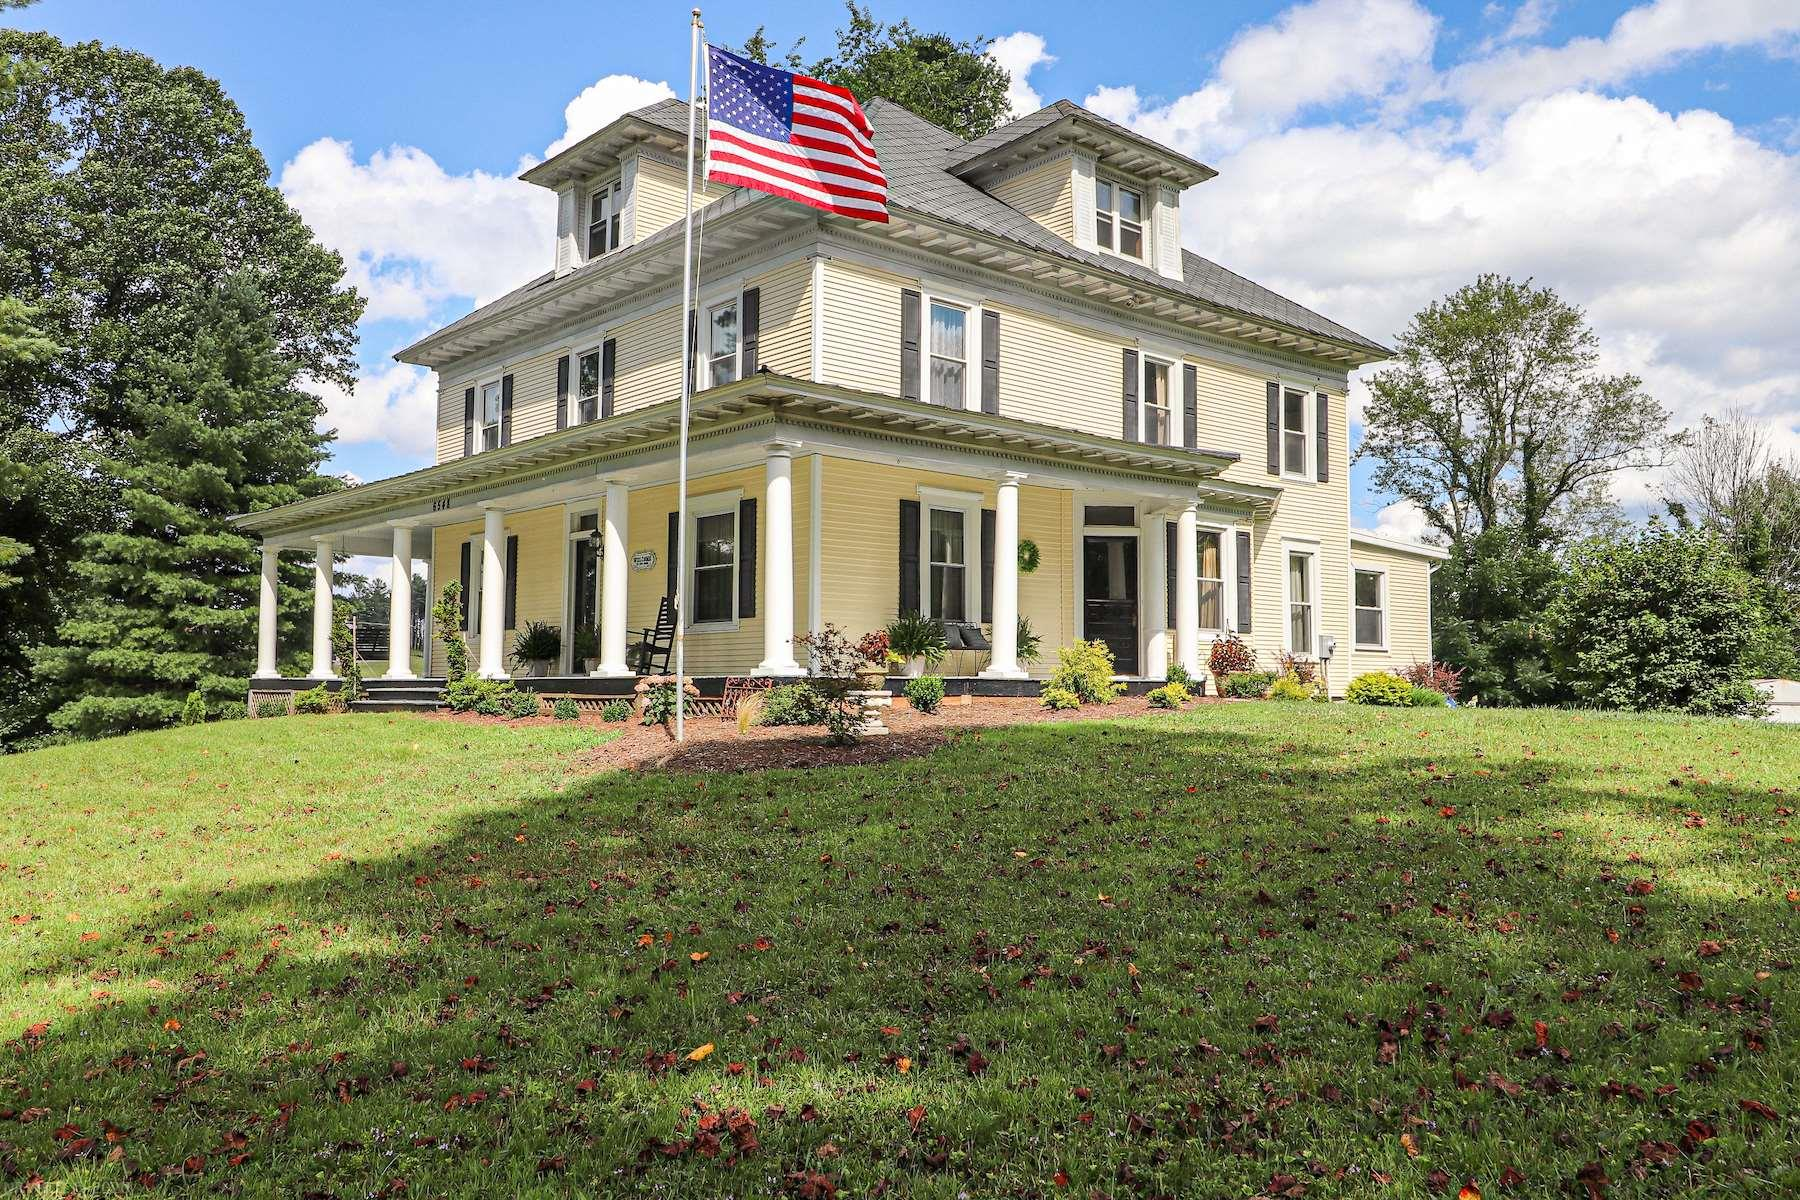 This tranquil late 1800s Victorian home exhibits history in Floyd County.  The home offers 5 bedrooms and 3 full baths, breakfast nook, dining area, kitchen, 2 laundry areas, living room and attic space.  The home is settled on over an acre and offers two buildings for storage, one of which was once the Post Office and Bank of Check.  This spacious home is perfect for a large family or for a potential Air BnB.  Entertaining is effortless in this home as it affords historic topics regarding the home's beautiful Victorian design.  The wrap around deck is perfect for enjoying a morning cup of coffee and entertaining purposes.  Being only minutes from Roanoke, Town of Floyd and Christiansburg this property offers the peacefulness of the country while being centrally located.  If you are looking for country living with a spacious home for your family or guests to enjoy this home is for you!